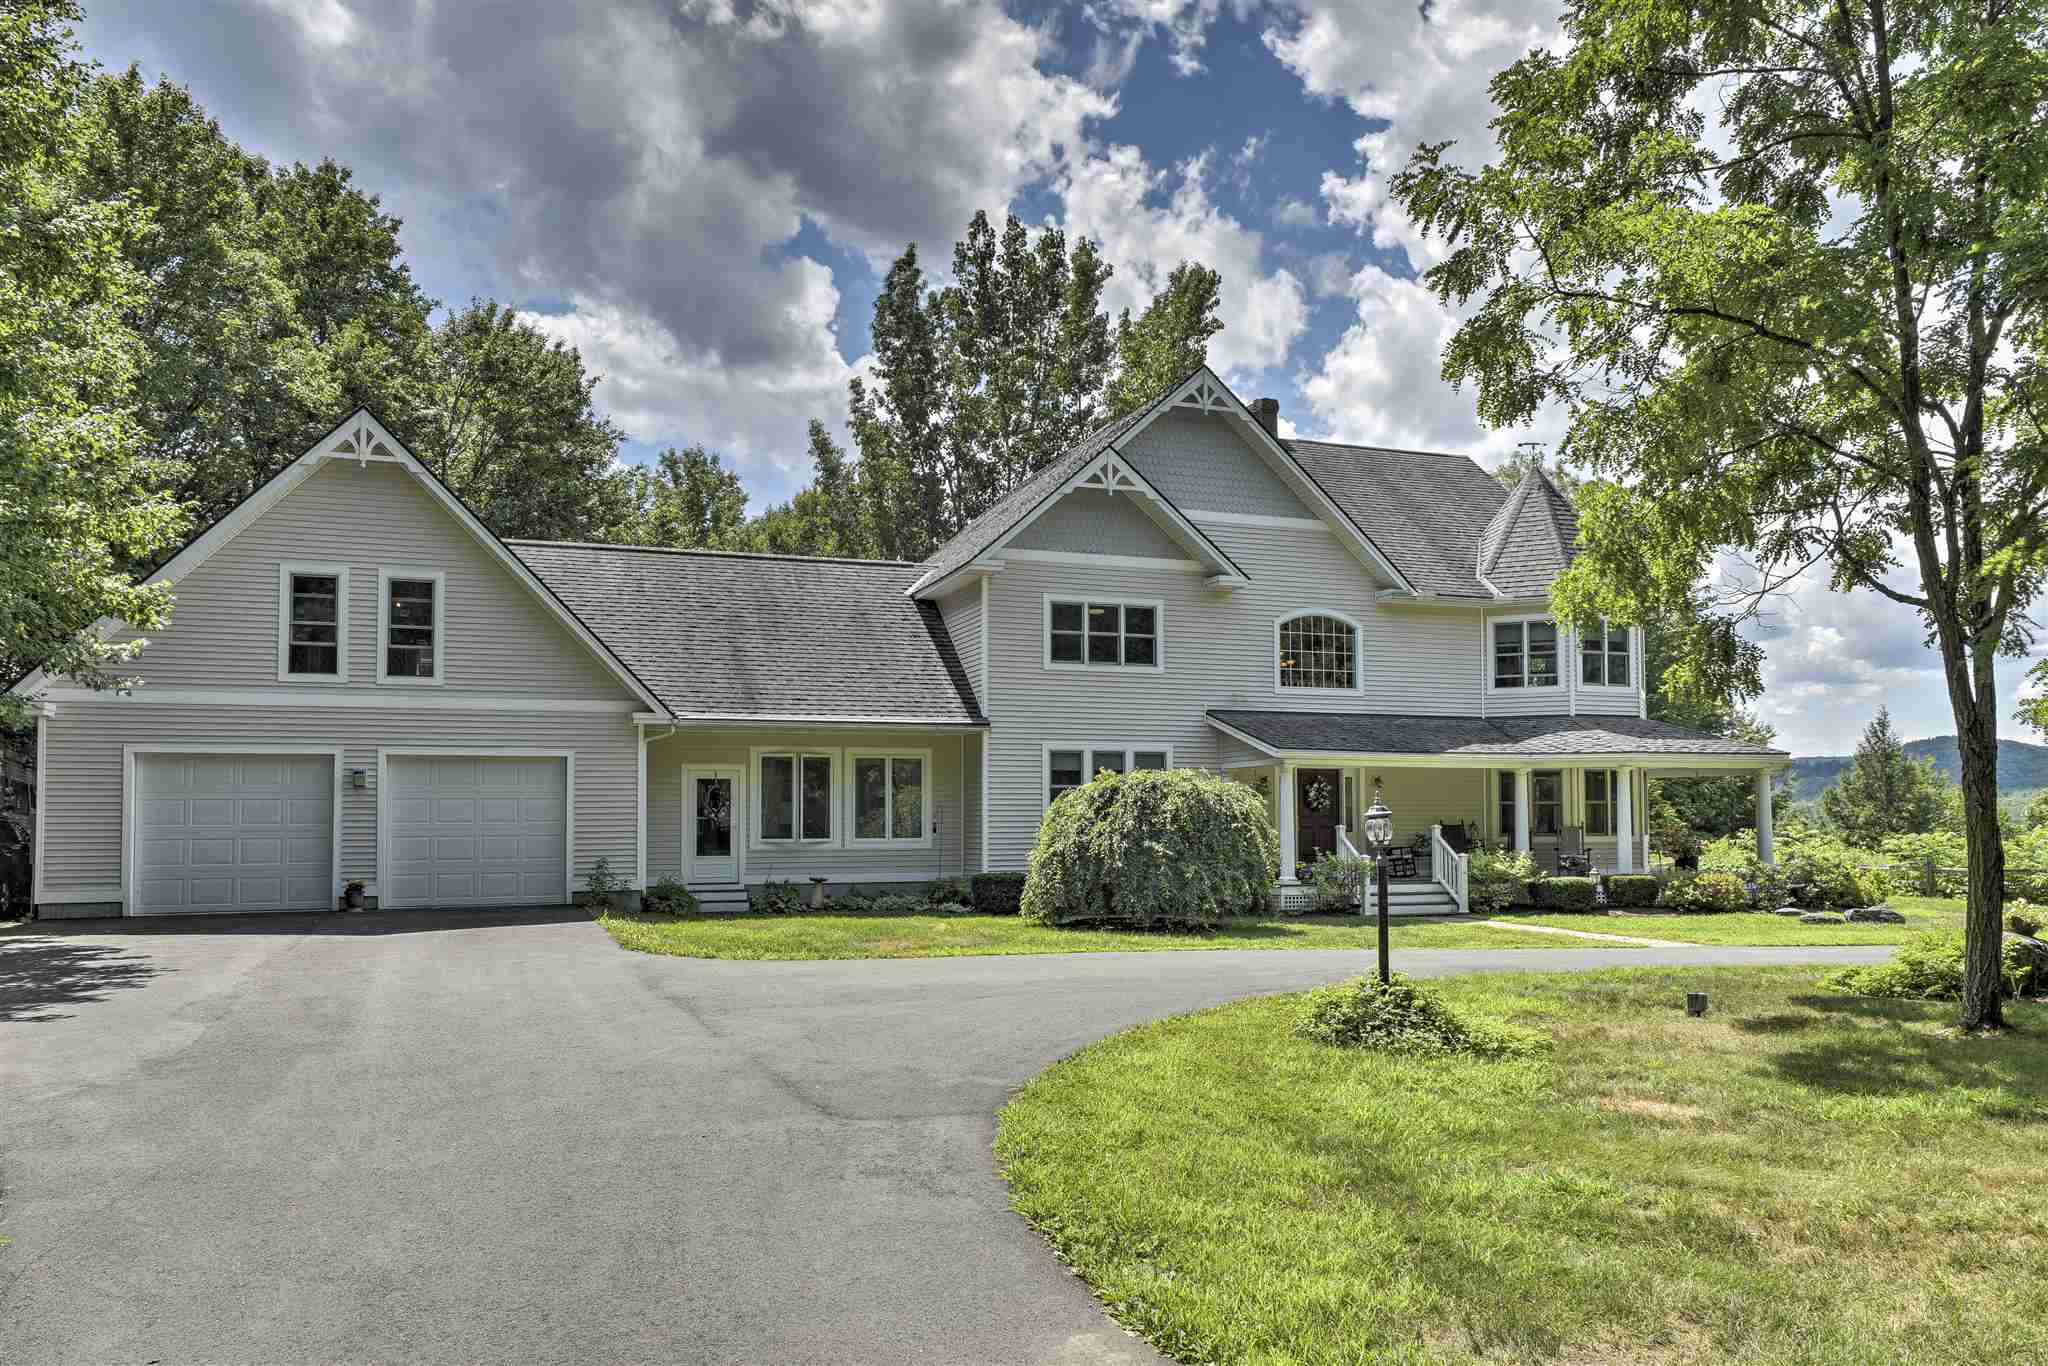 MLS 4818780: 20 Blanchard Brook Circle, Walpole NH